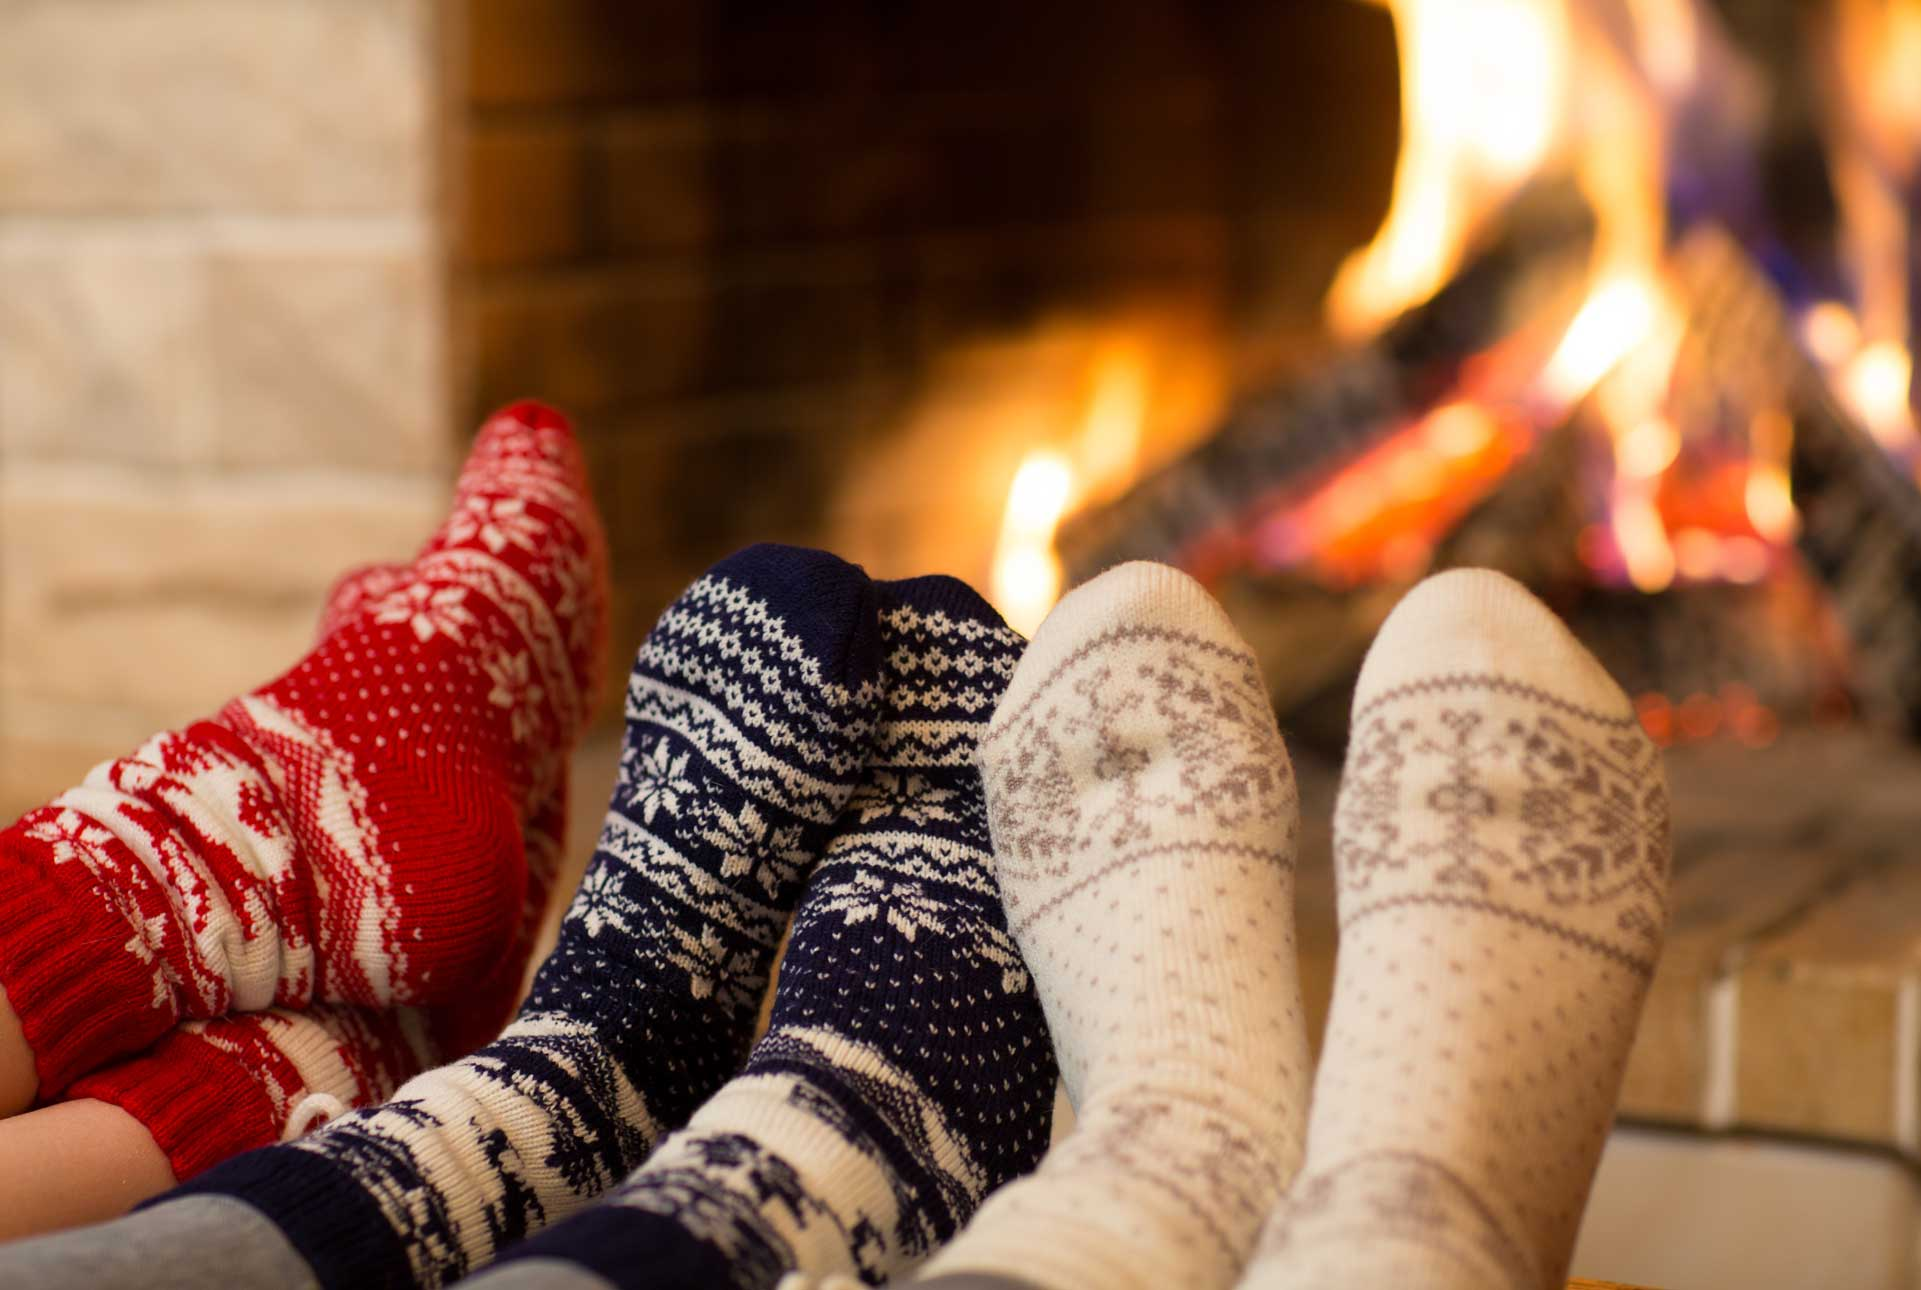 Winter Carpet Cleaning Care after a busy winter